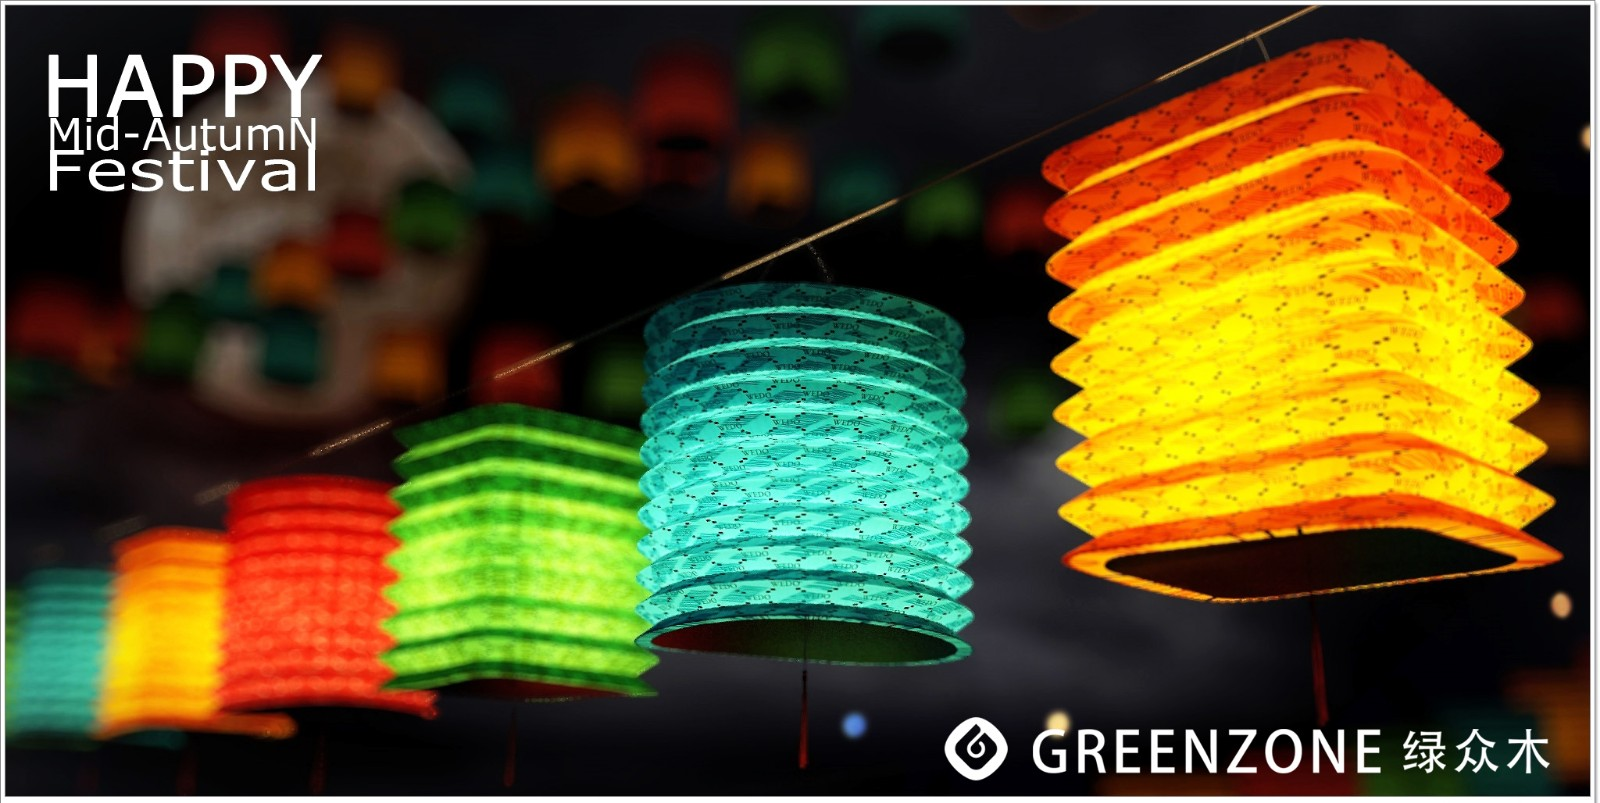 Greenzone-Greenzone 2018 Mid-Autumn Festival Holiday Notice News About Black Marble Slab